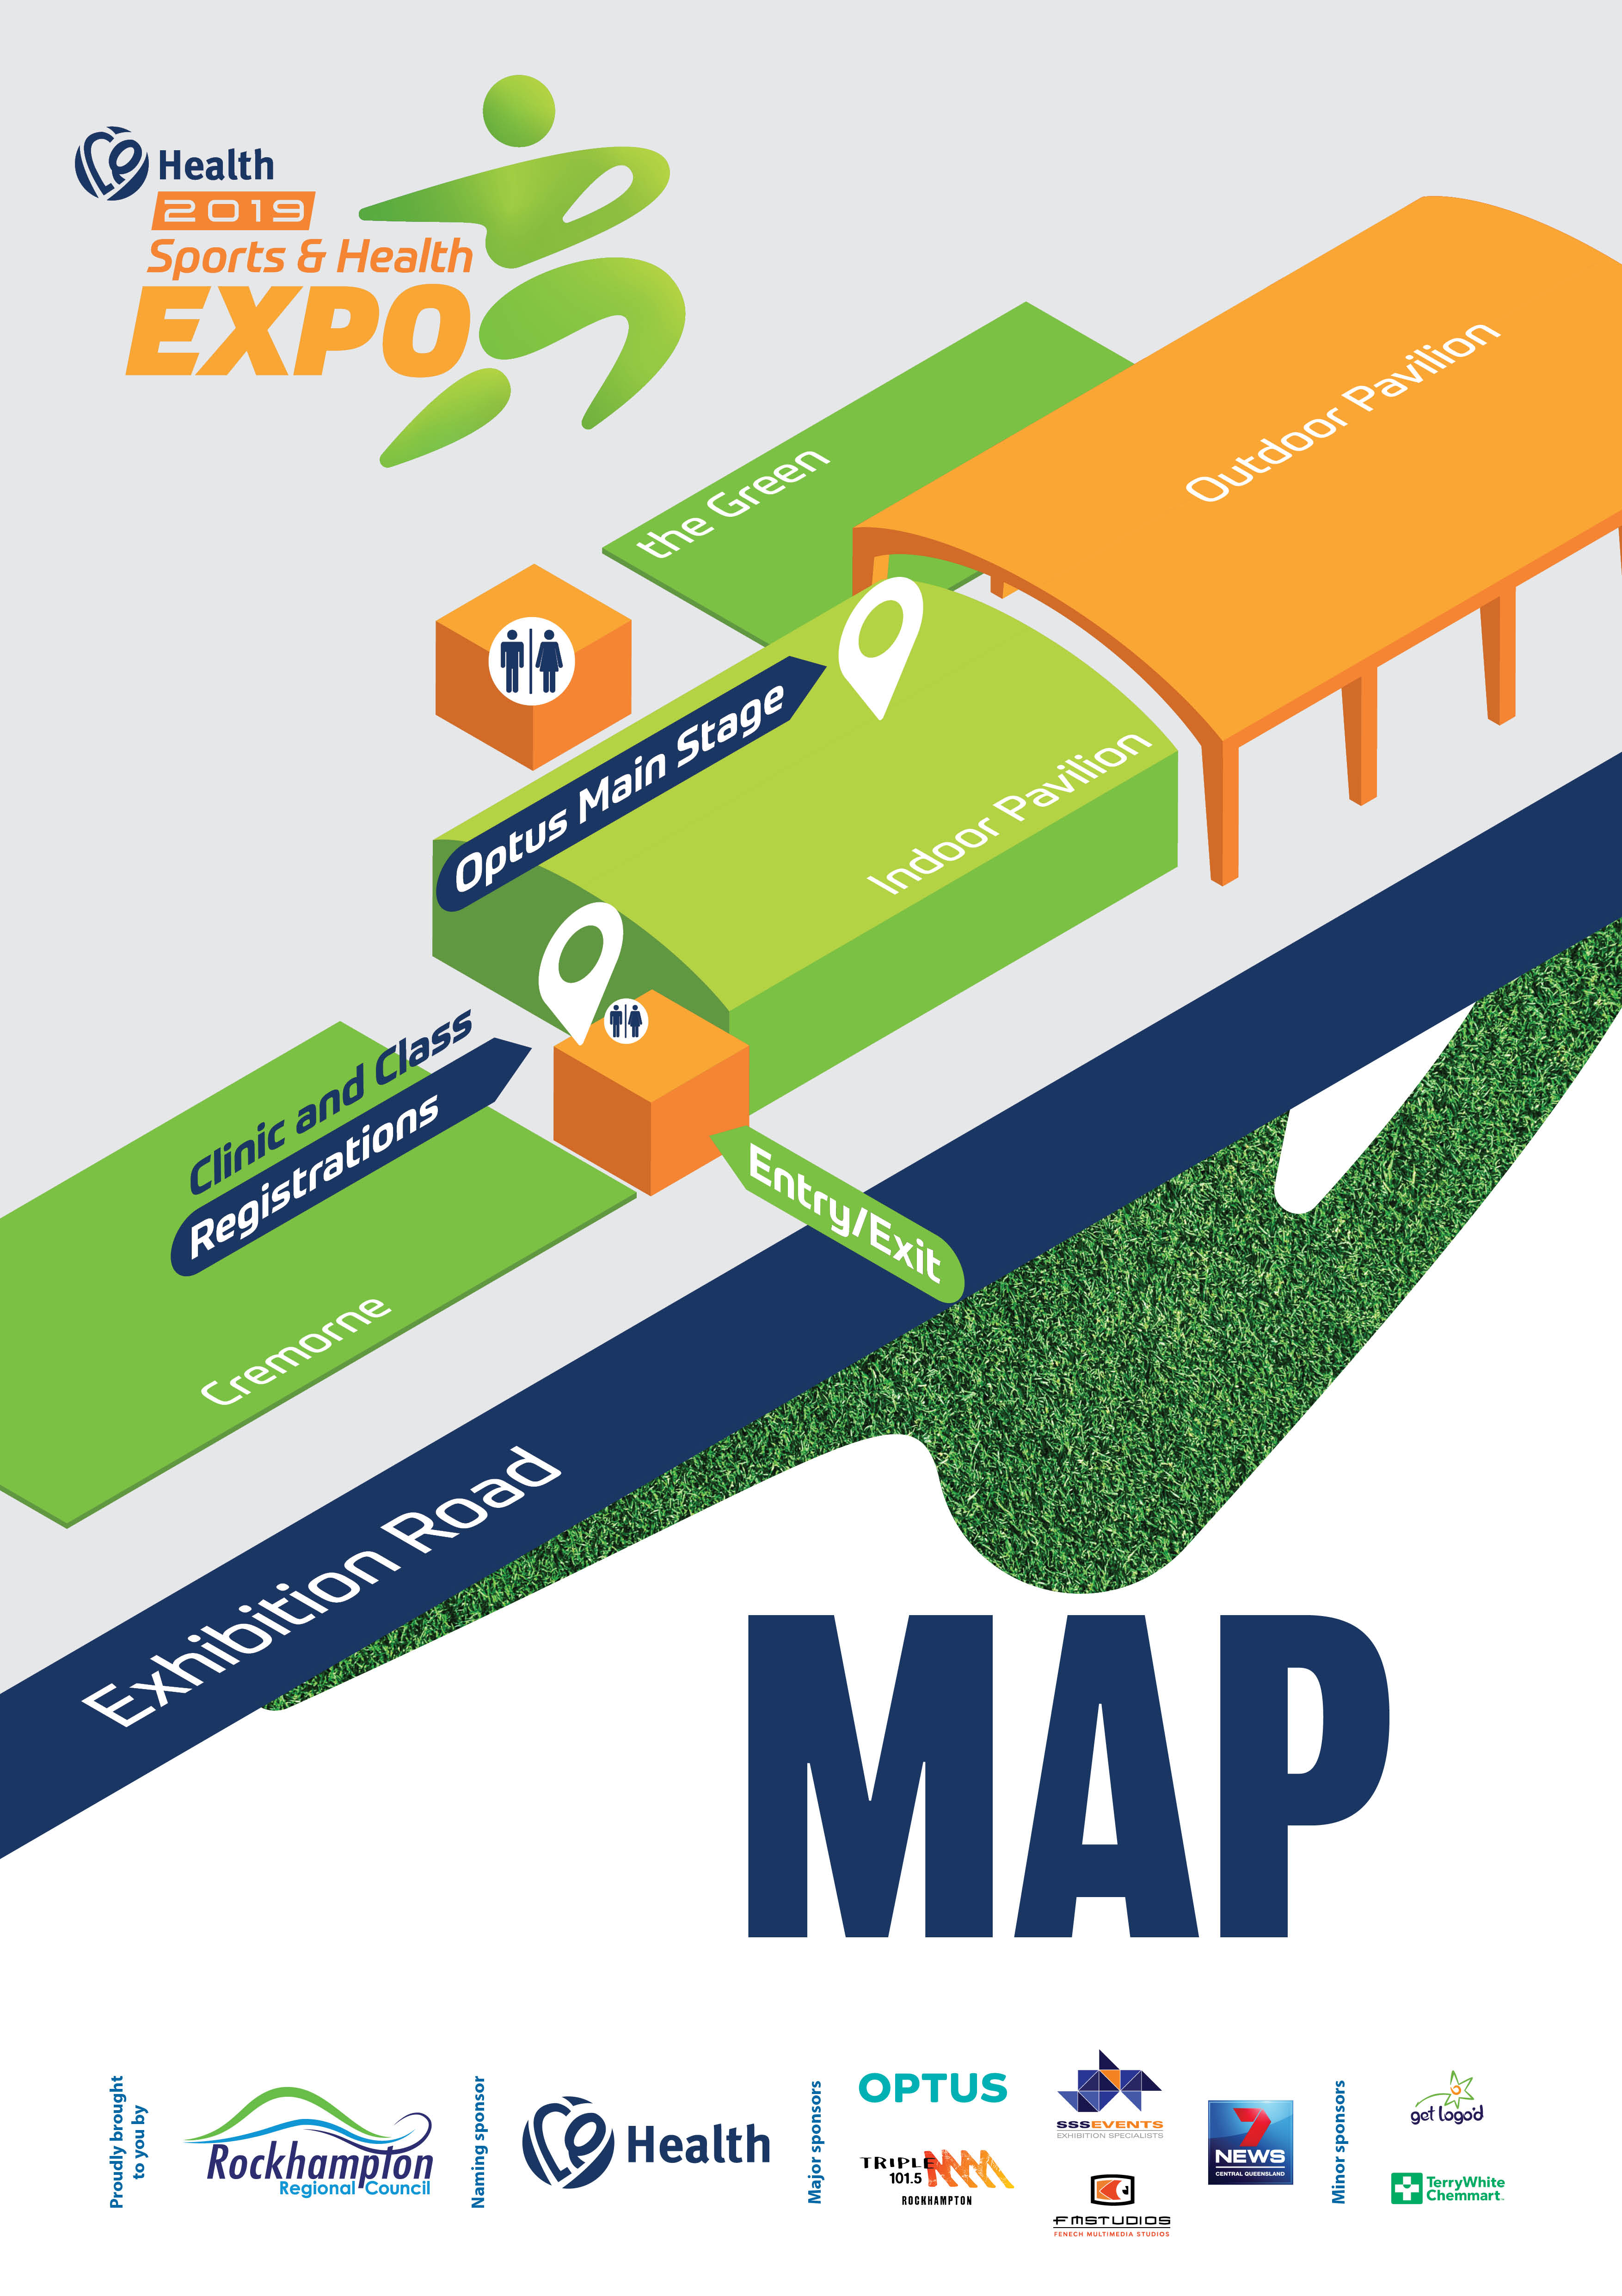 CQ-Sports-and-Health-Expo-A1-Signage-map.jpg